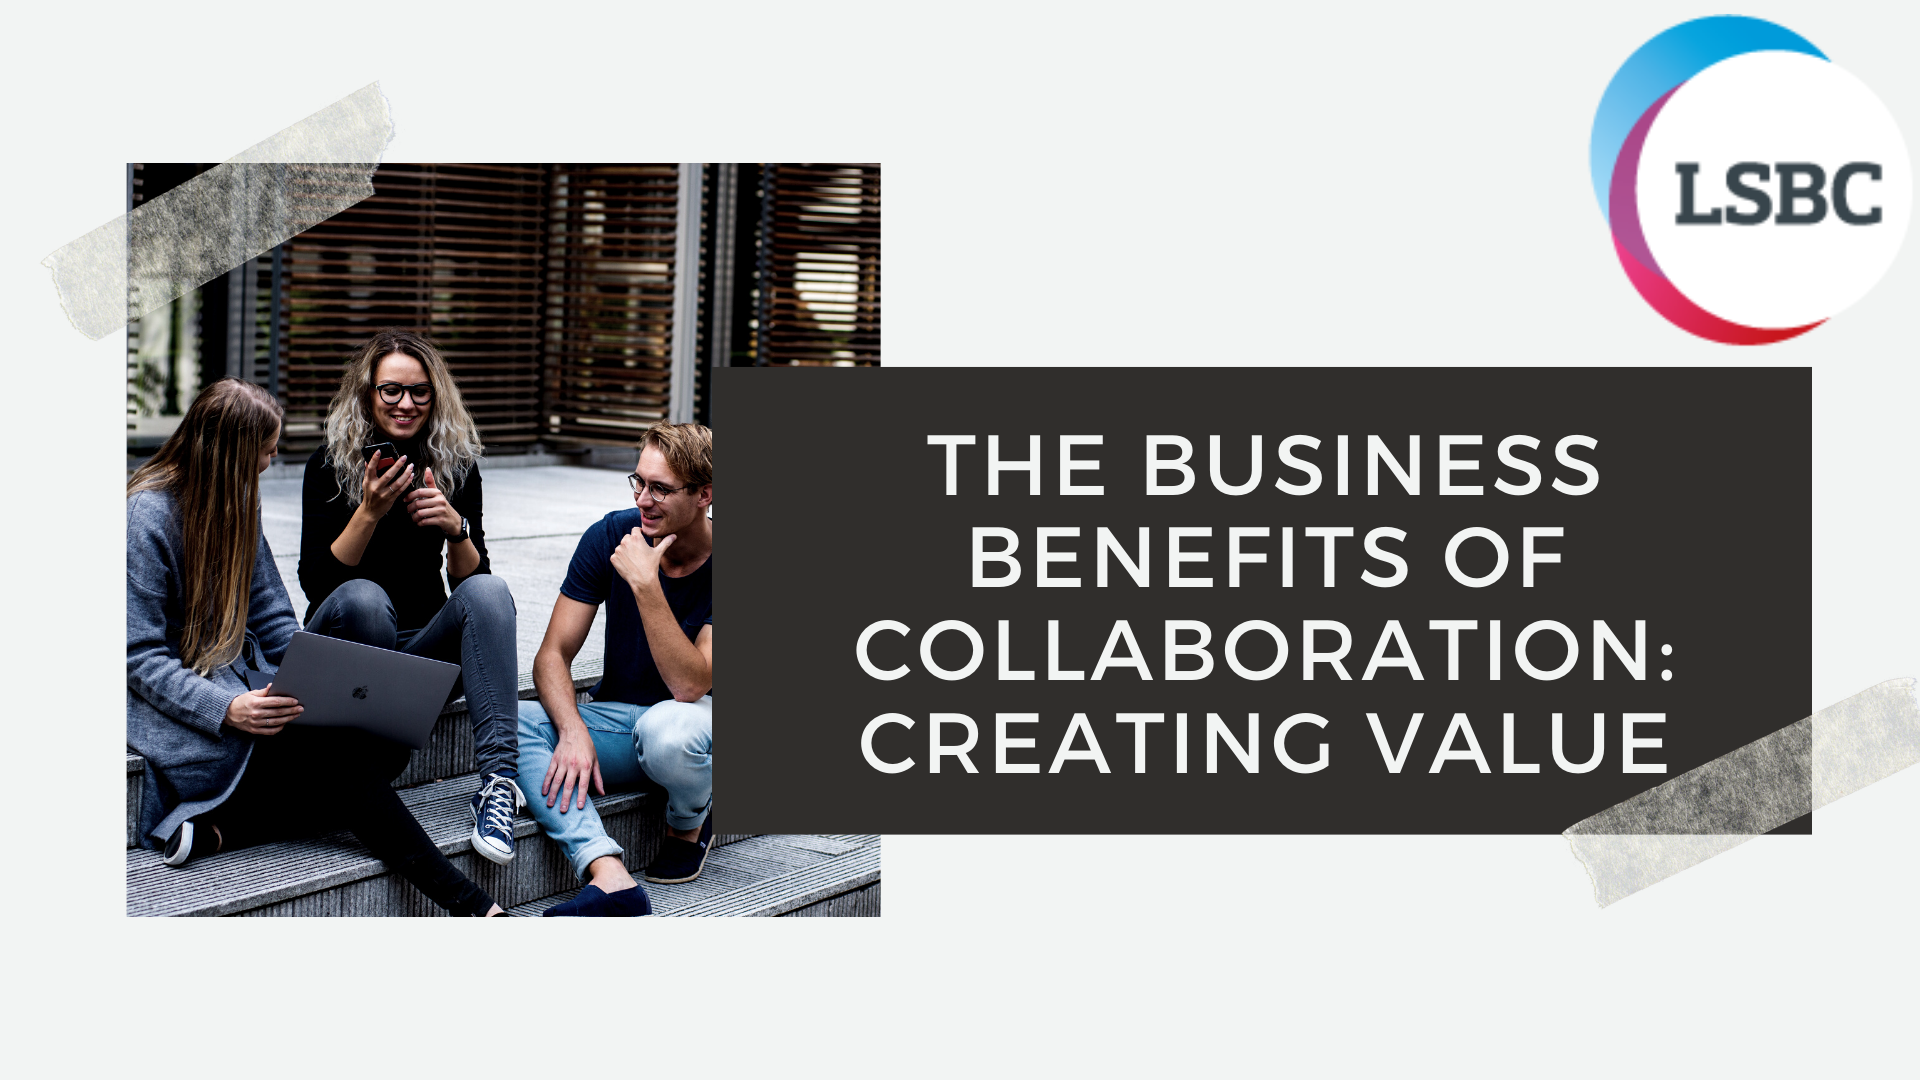 The business benefits of collaboration: creating value.